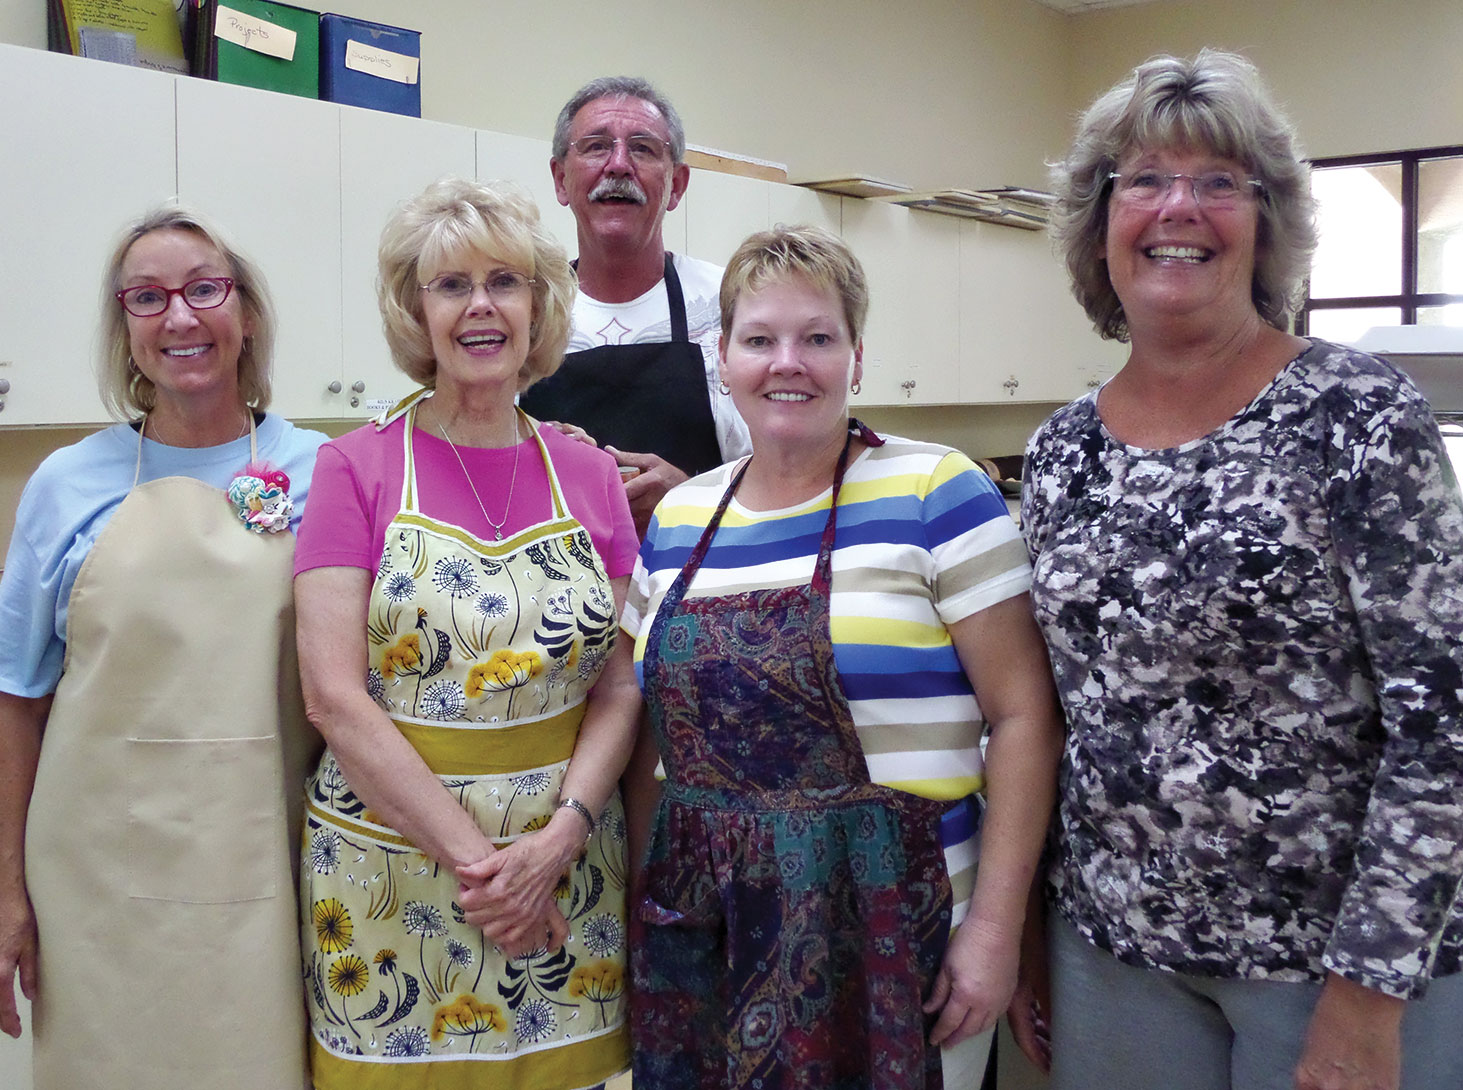 New members, front: Helen Justen, Janet Seery, Nancy Rogus and Kathy Todd; back, Mike Shippy